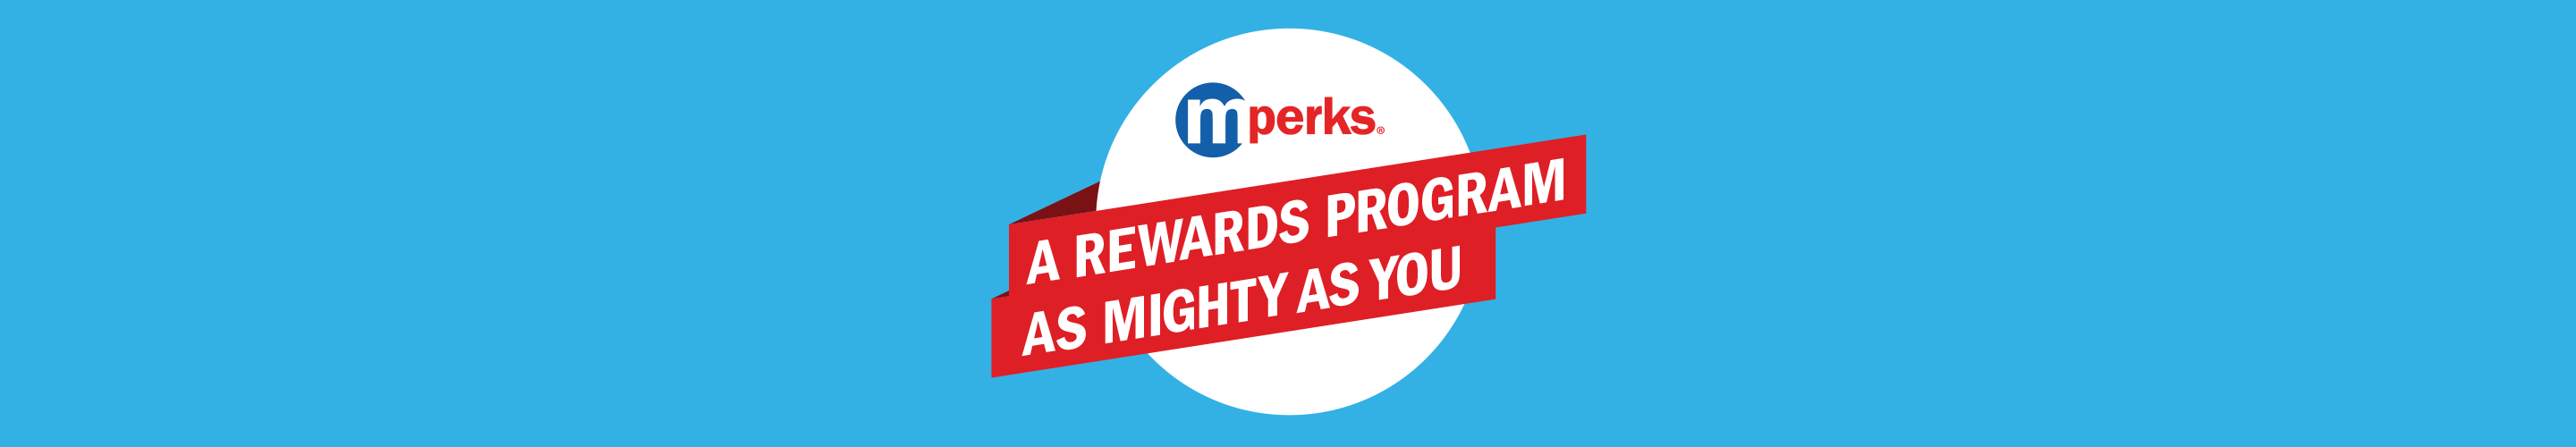 Meijer mPerks - Your savings with mPerks rewards are personalized to the way you shop.